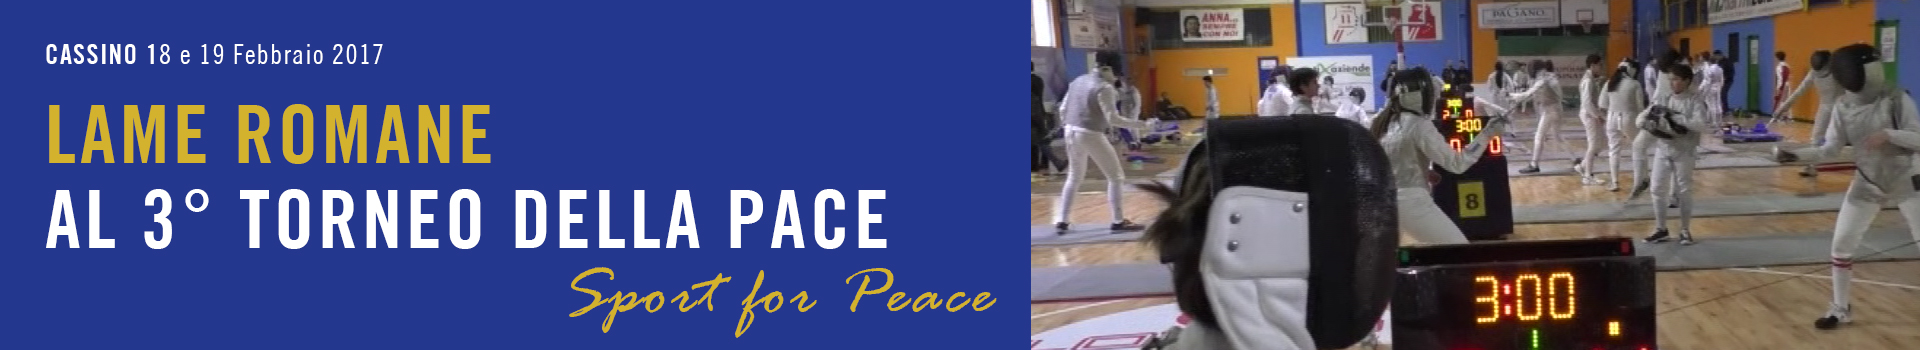 Lame Romane al Torneo della Pace - Sport for Peace - Cassino